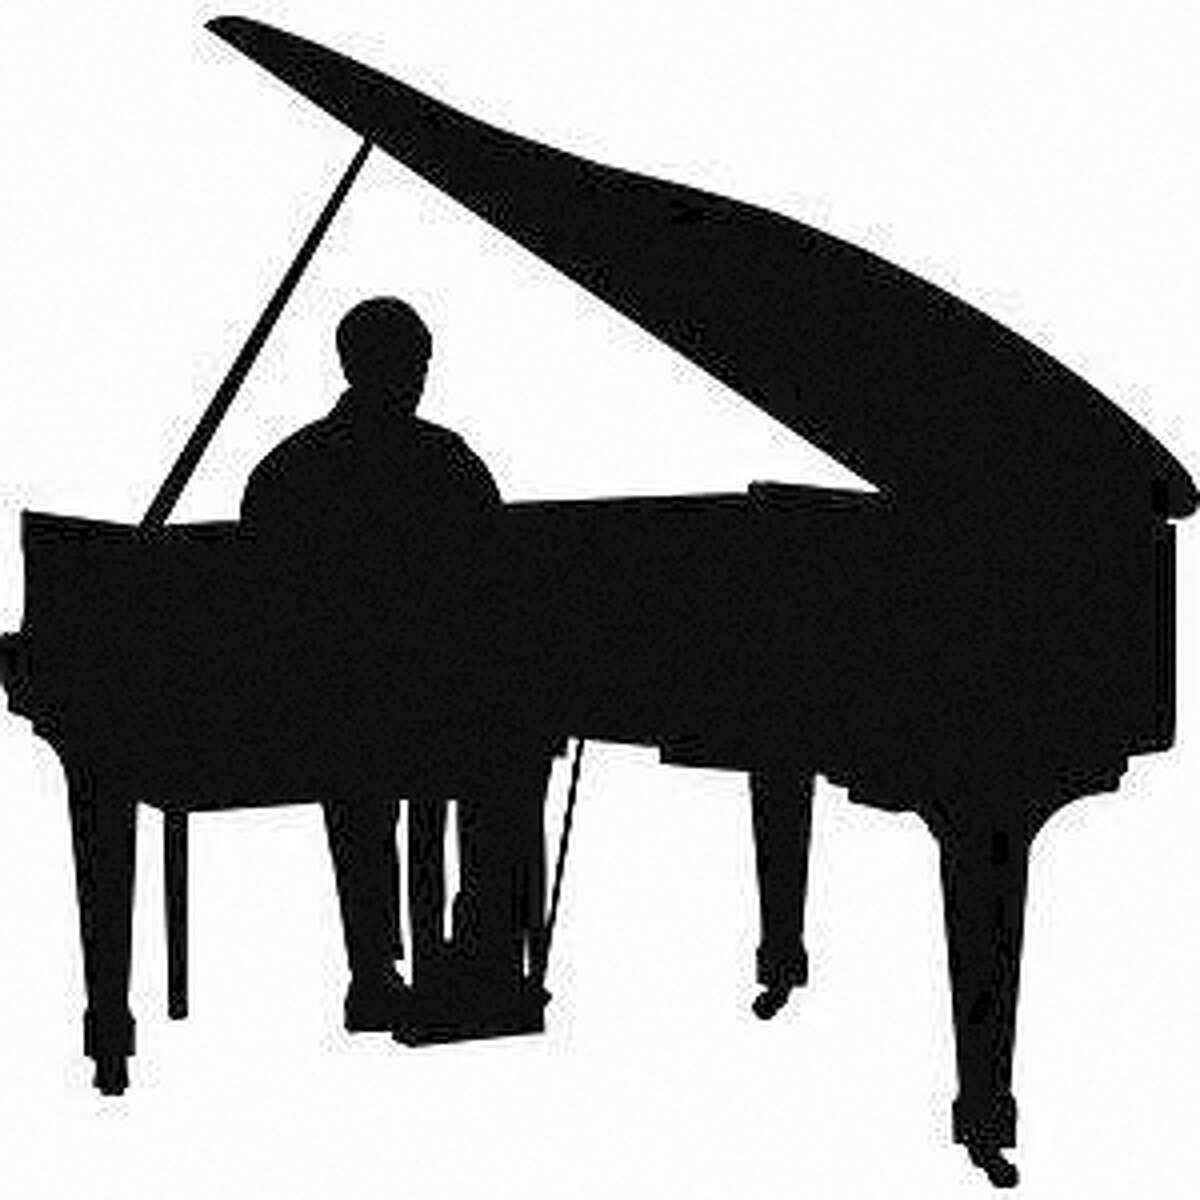 Pianist Donald Alfano is scheduled to perform a free recital at the Gunn Memorial Library on Sunday, April 9.